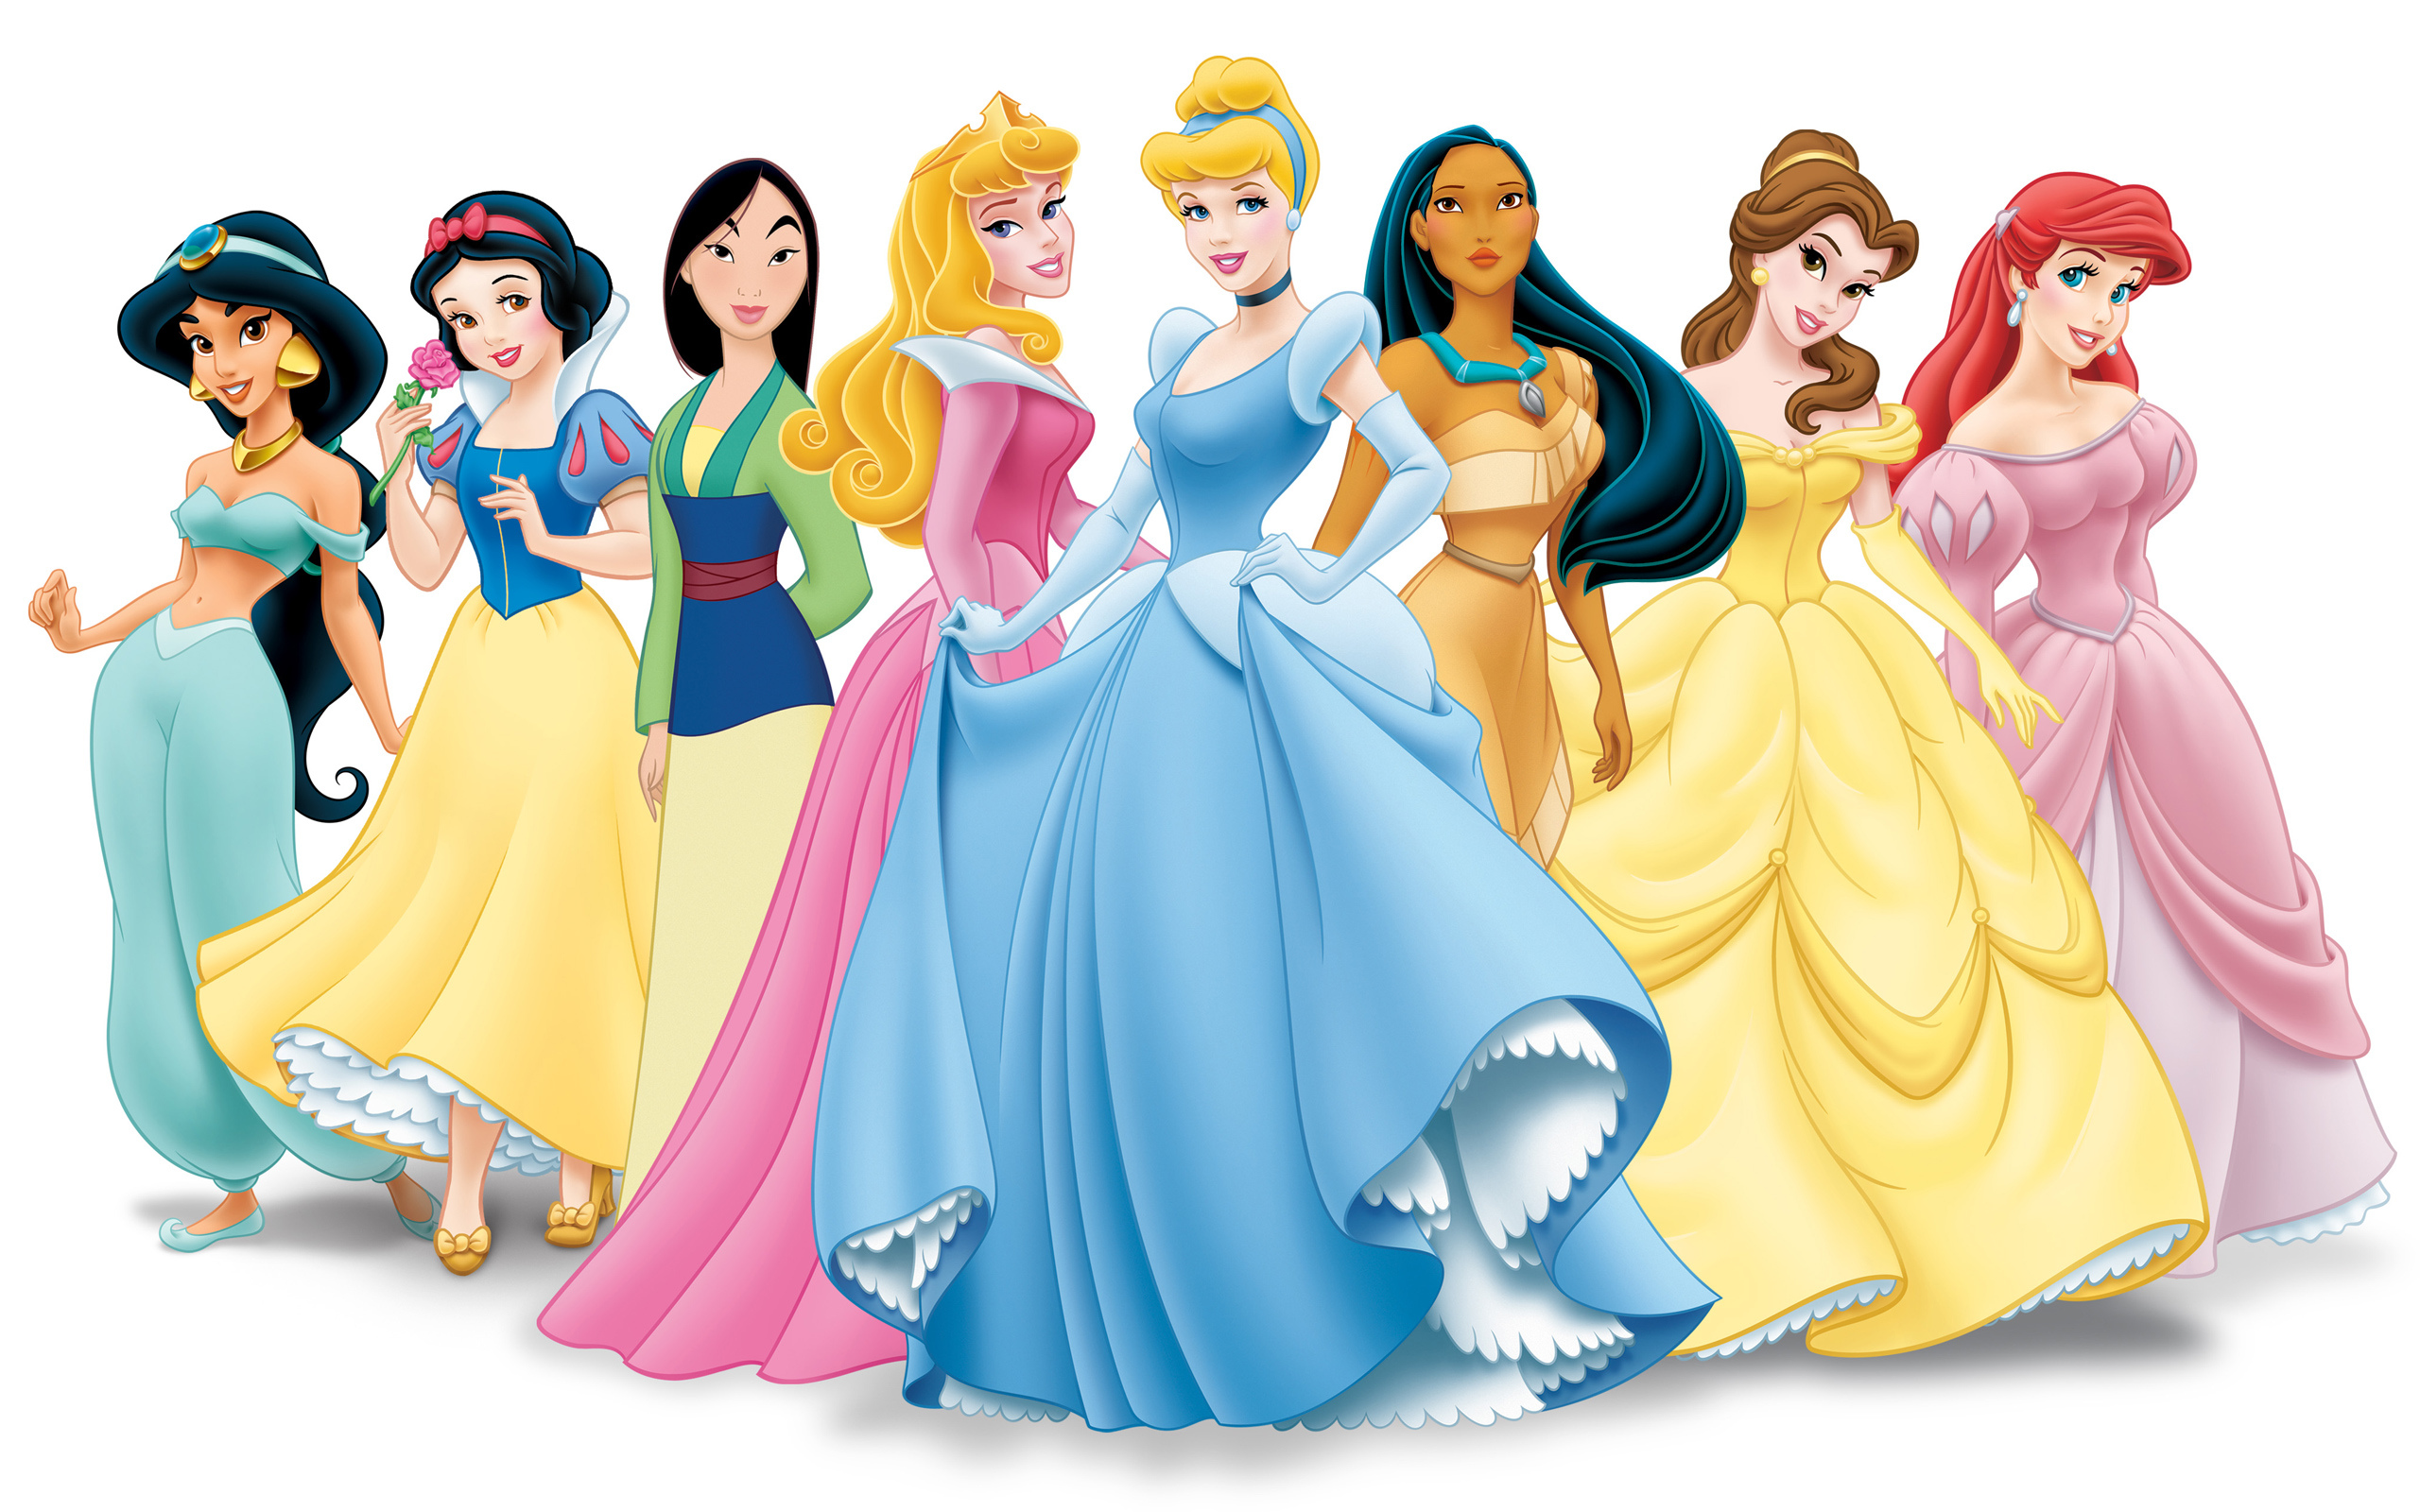 Princesas Disney fondos, disney princess wallpapers 2020